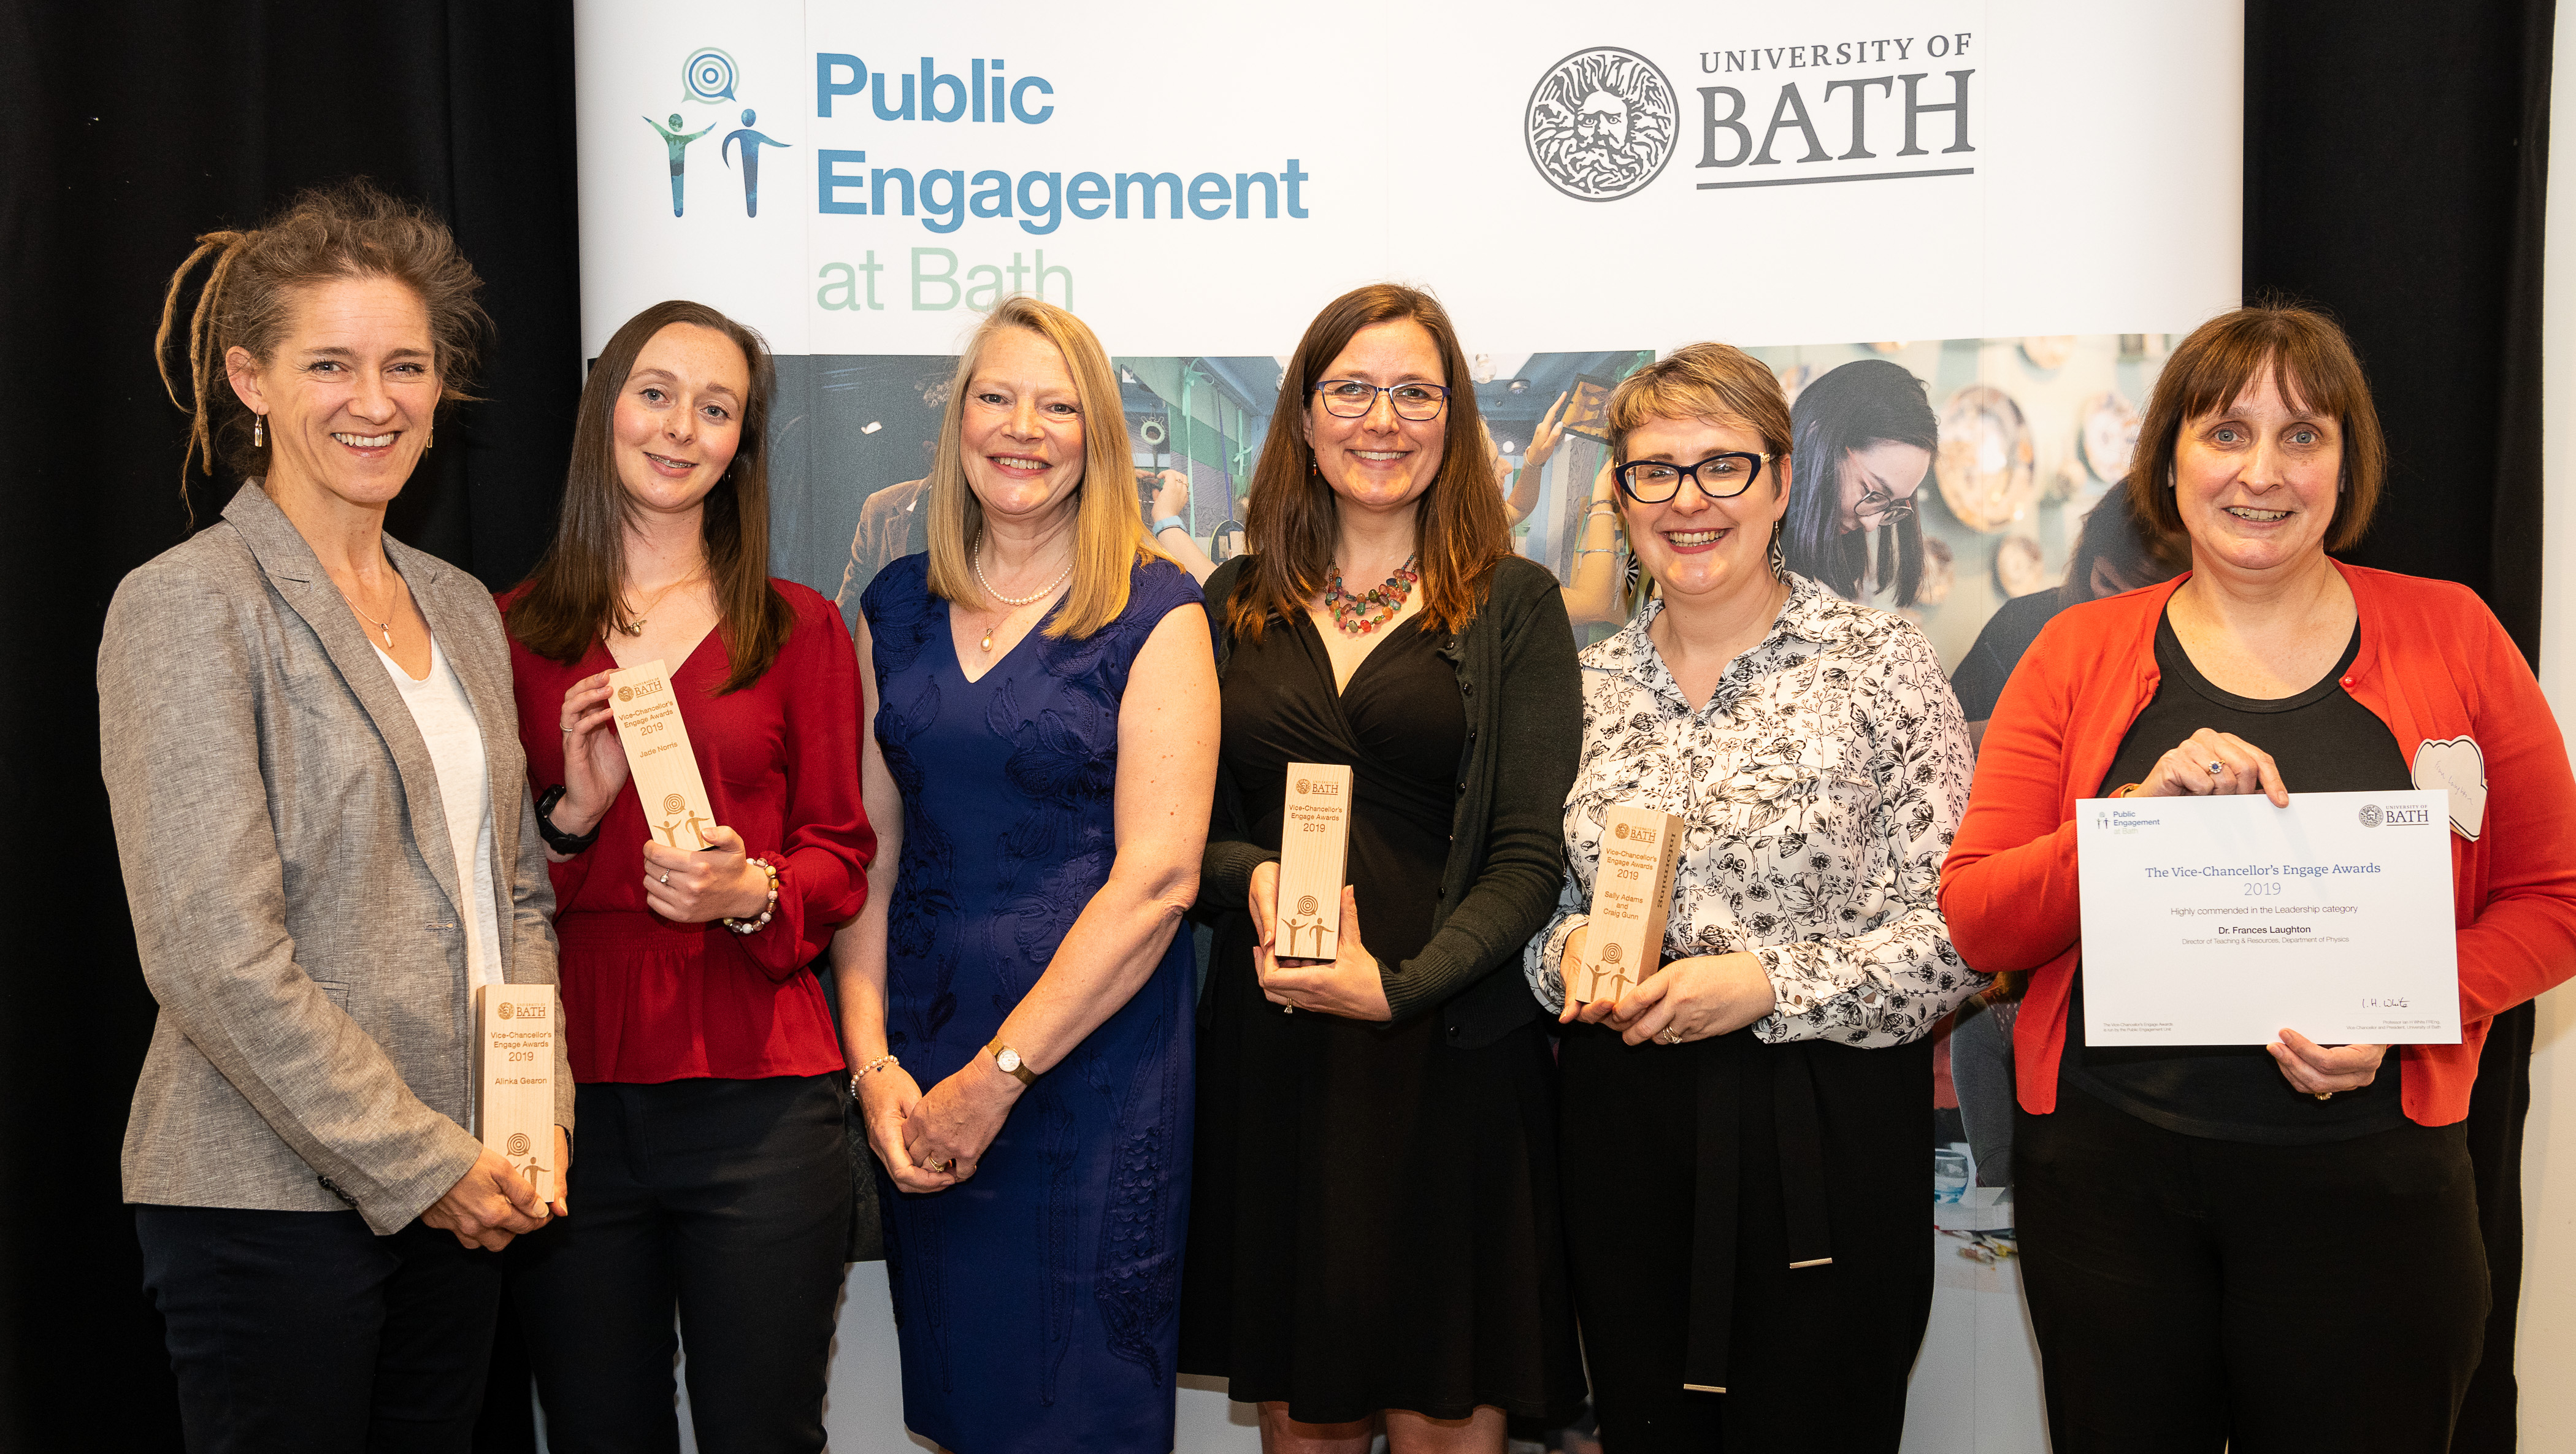 The Vice-Chancellor's Engage Awards and Showcase